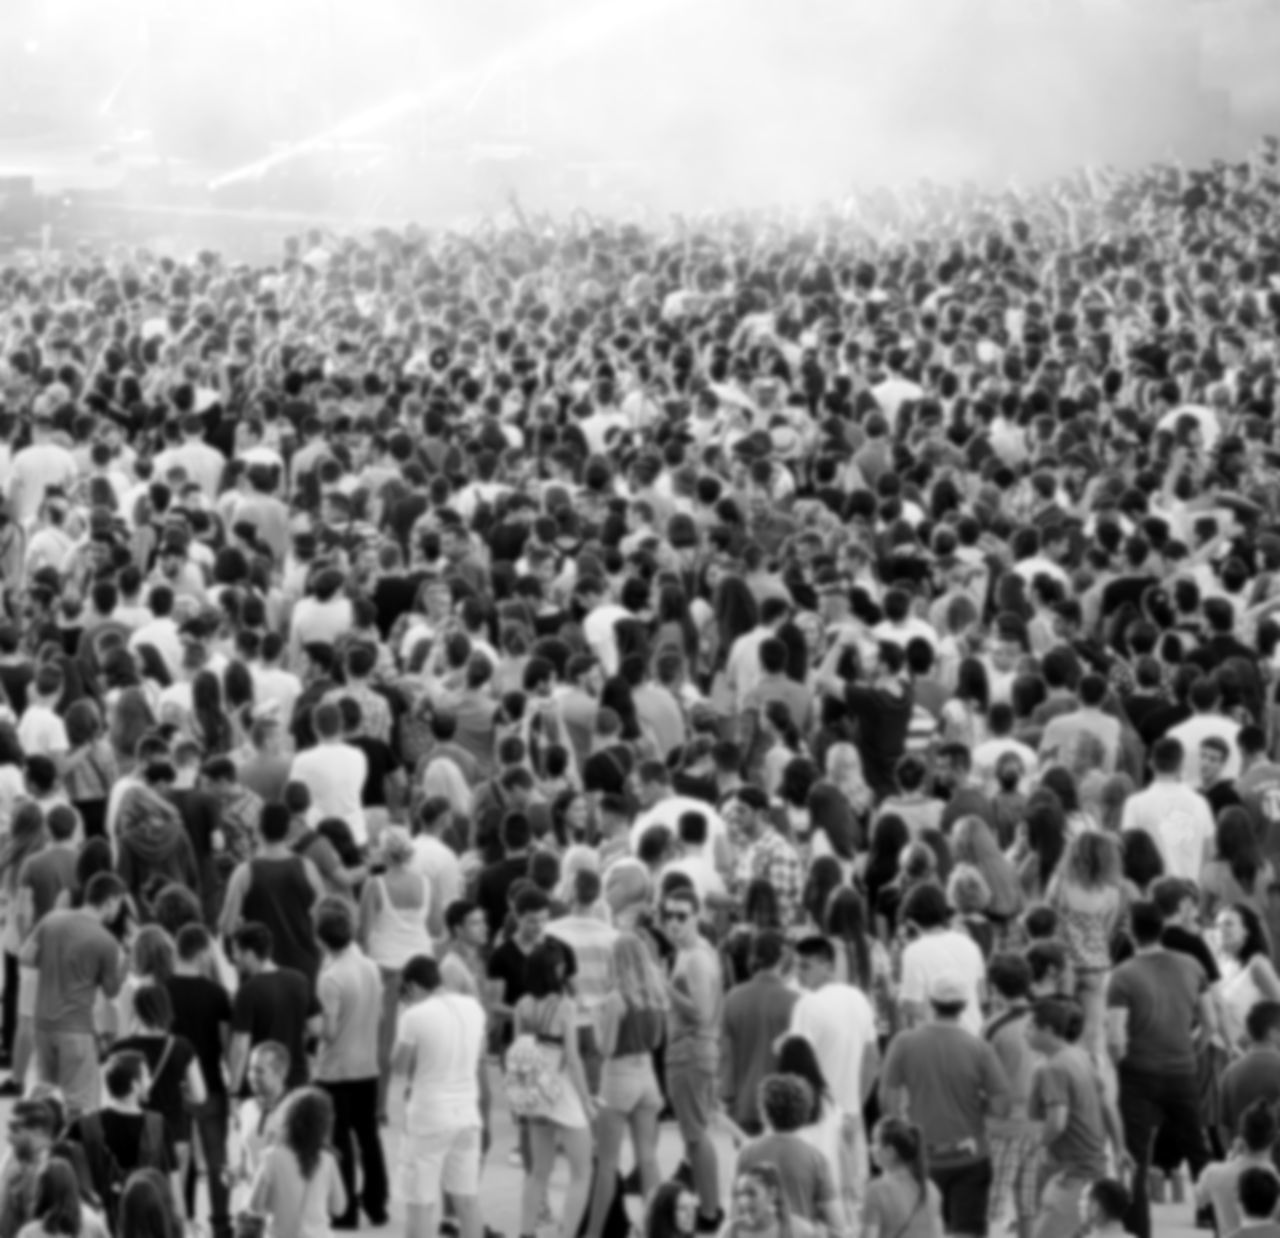 Crowd of partying people at a music festival. Blurred image Blurred Blurred Motion Blurred Visions Concert Crowd Crowded Crowded People Crowded Place Crowds European  Festival Happiness Live Music Music Festival Party Time Partying People Raised Hands Summer Views Thousands Untold Festival Vacation Time Vibration Young